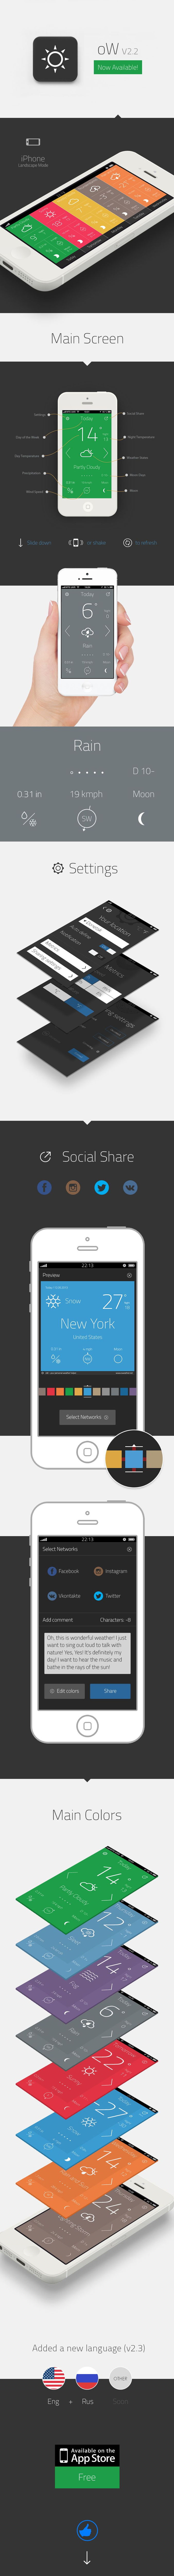 Perfect weather, stylish design, free forecast for every day. Push yourself to experience more. Have you looked out of the window ?  Available on AppStore!  Link to AppStore: https://itunes.apple.com/us/app/ow/id596100553?ls=1=8